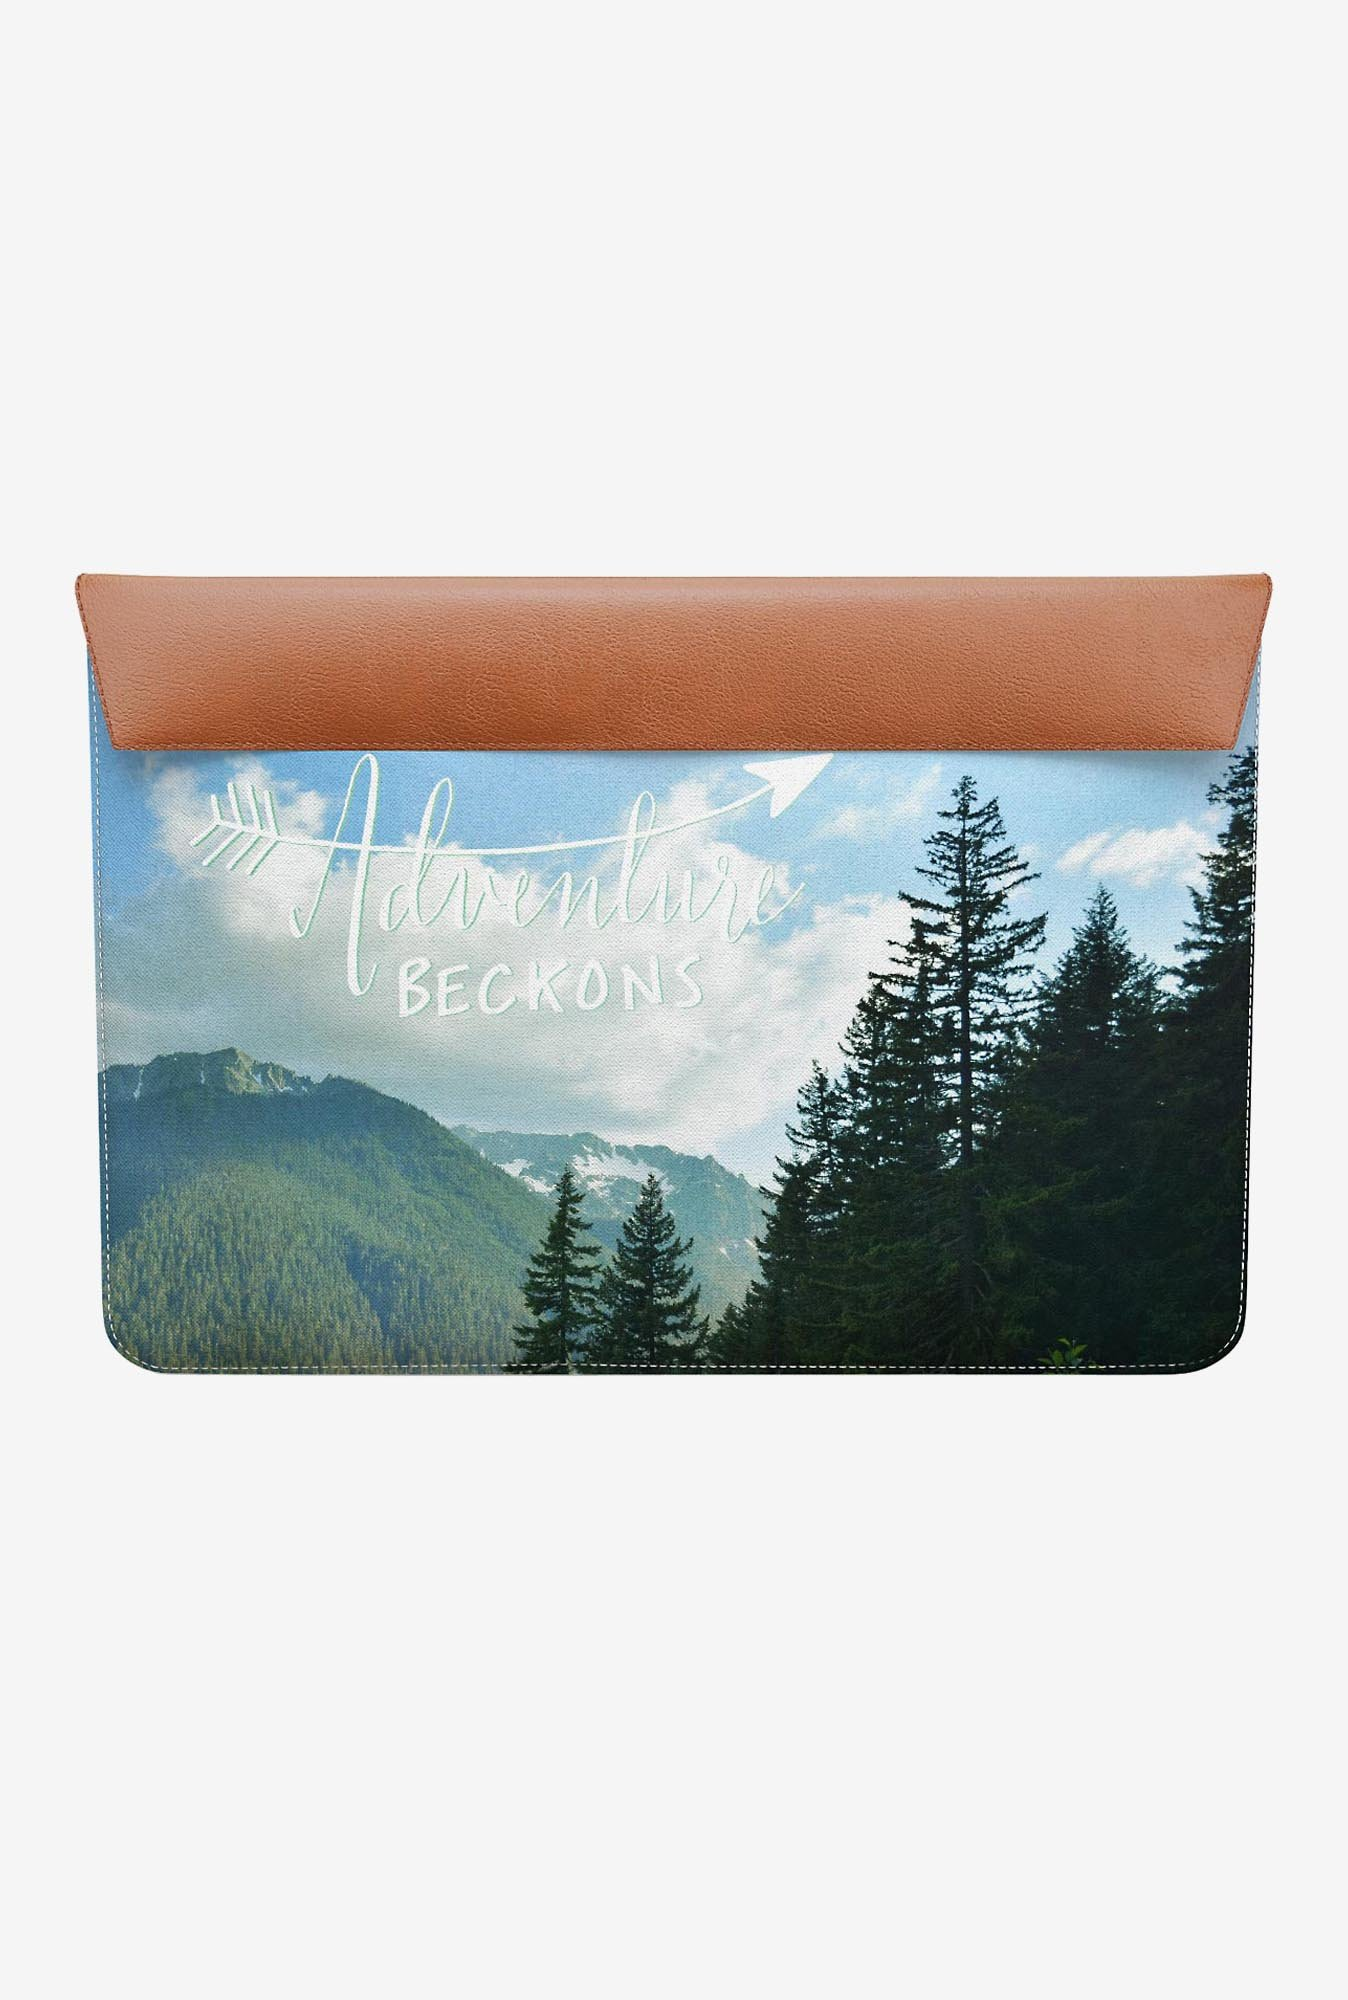 DailyObjects Adventure Beckon MacBook Pro 15 Envelope Sleeve